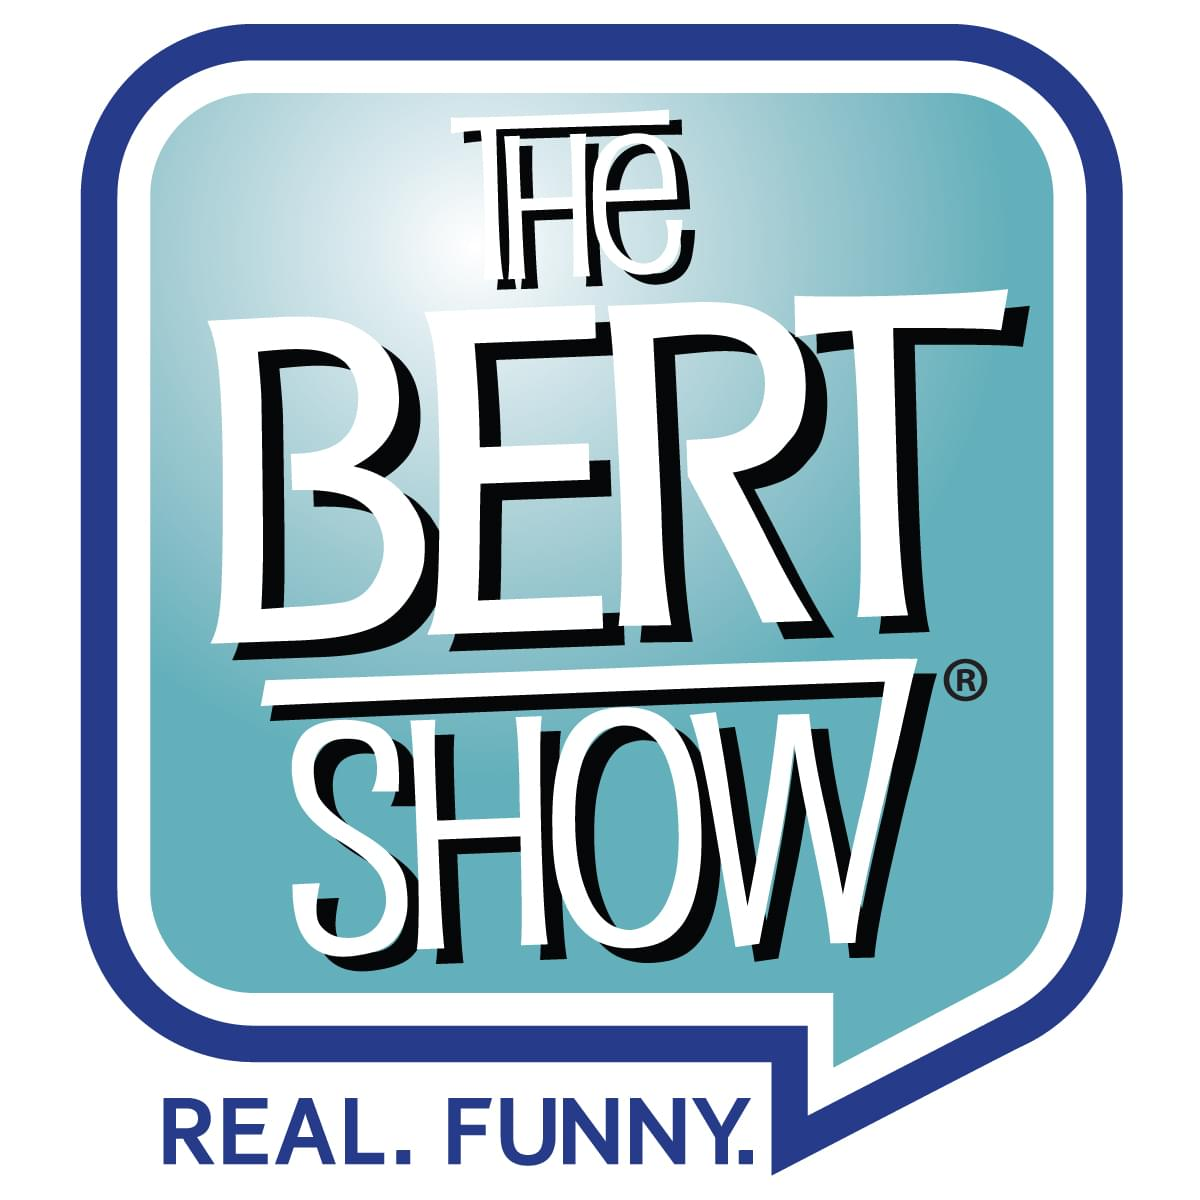 Real. Fun. Mornings! With The Bert Show